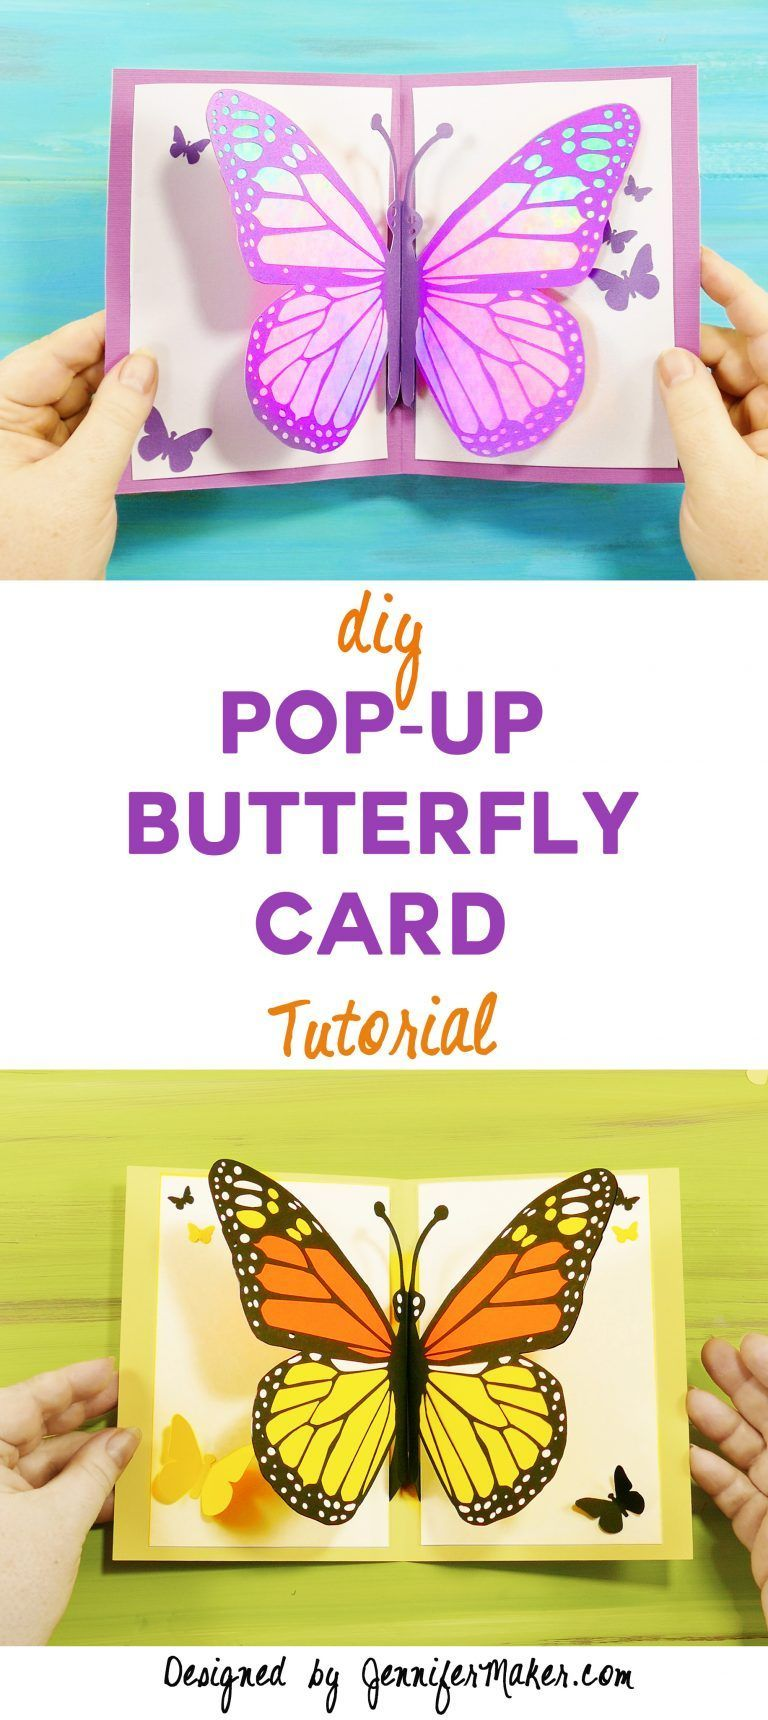 Free Tutorial Files And Pattern To Make A Pop Up Butterfly Card Spring Explore Pinterest Trending Diy Pop Up Cards Butterfly Cards Birthday Cards Diy